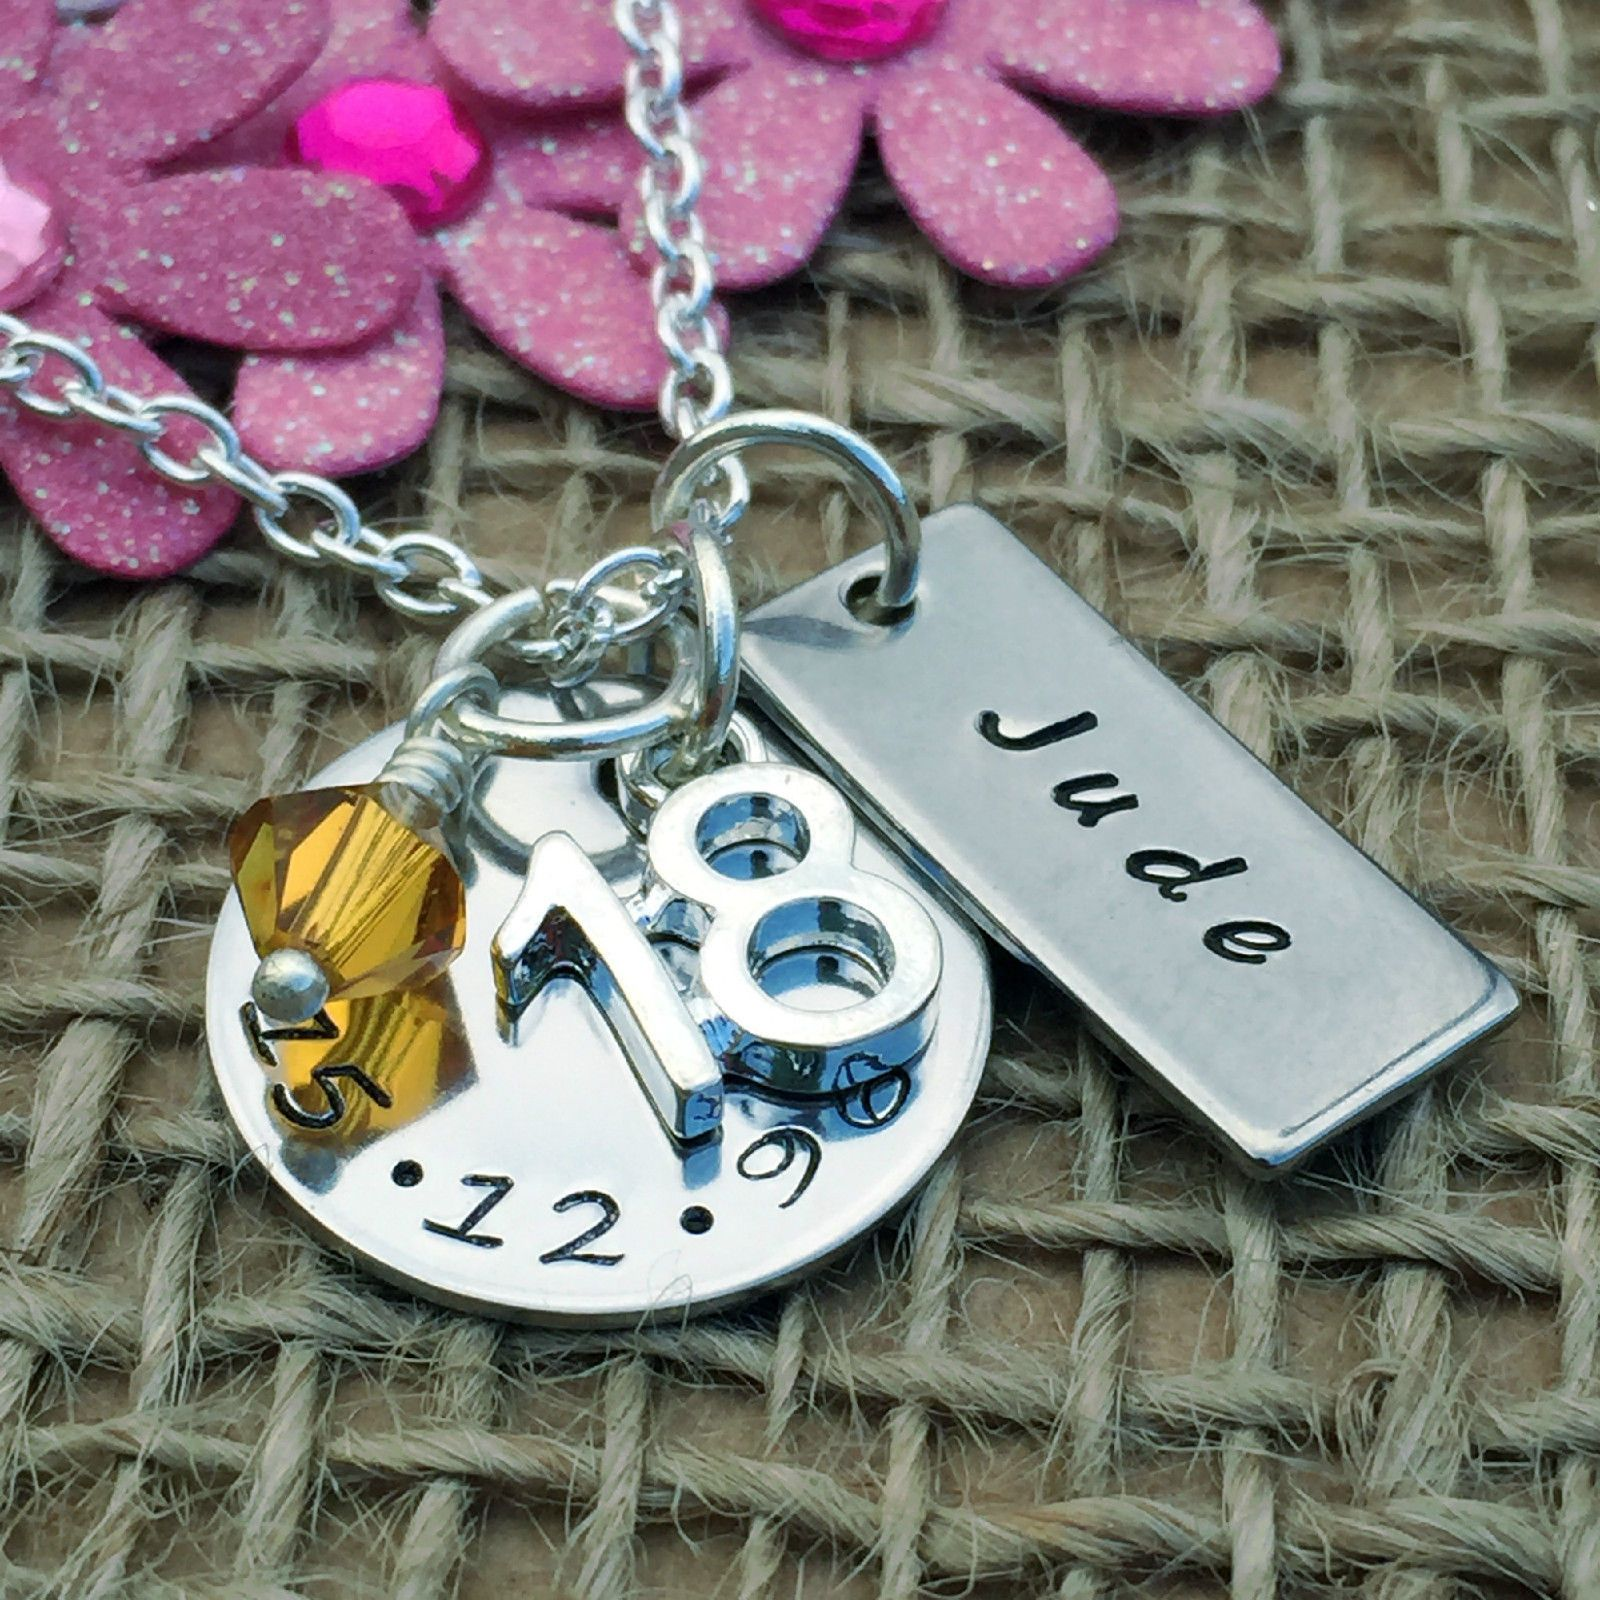 18Th Birthday Gift Ideas Personalised Jewellery For Her Ebay Home Garden